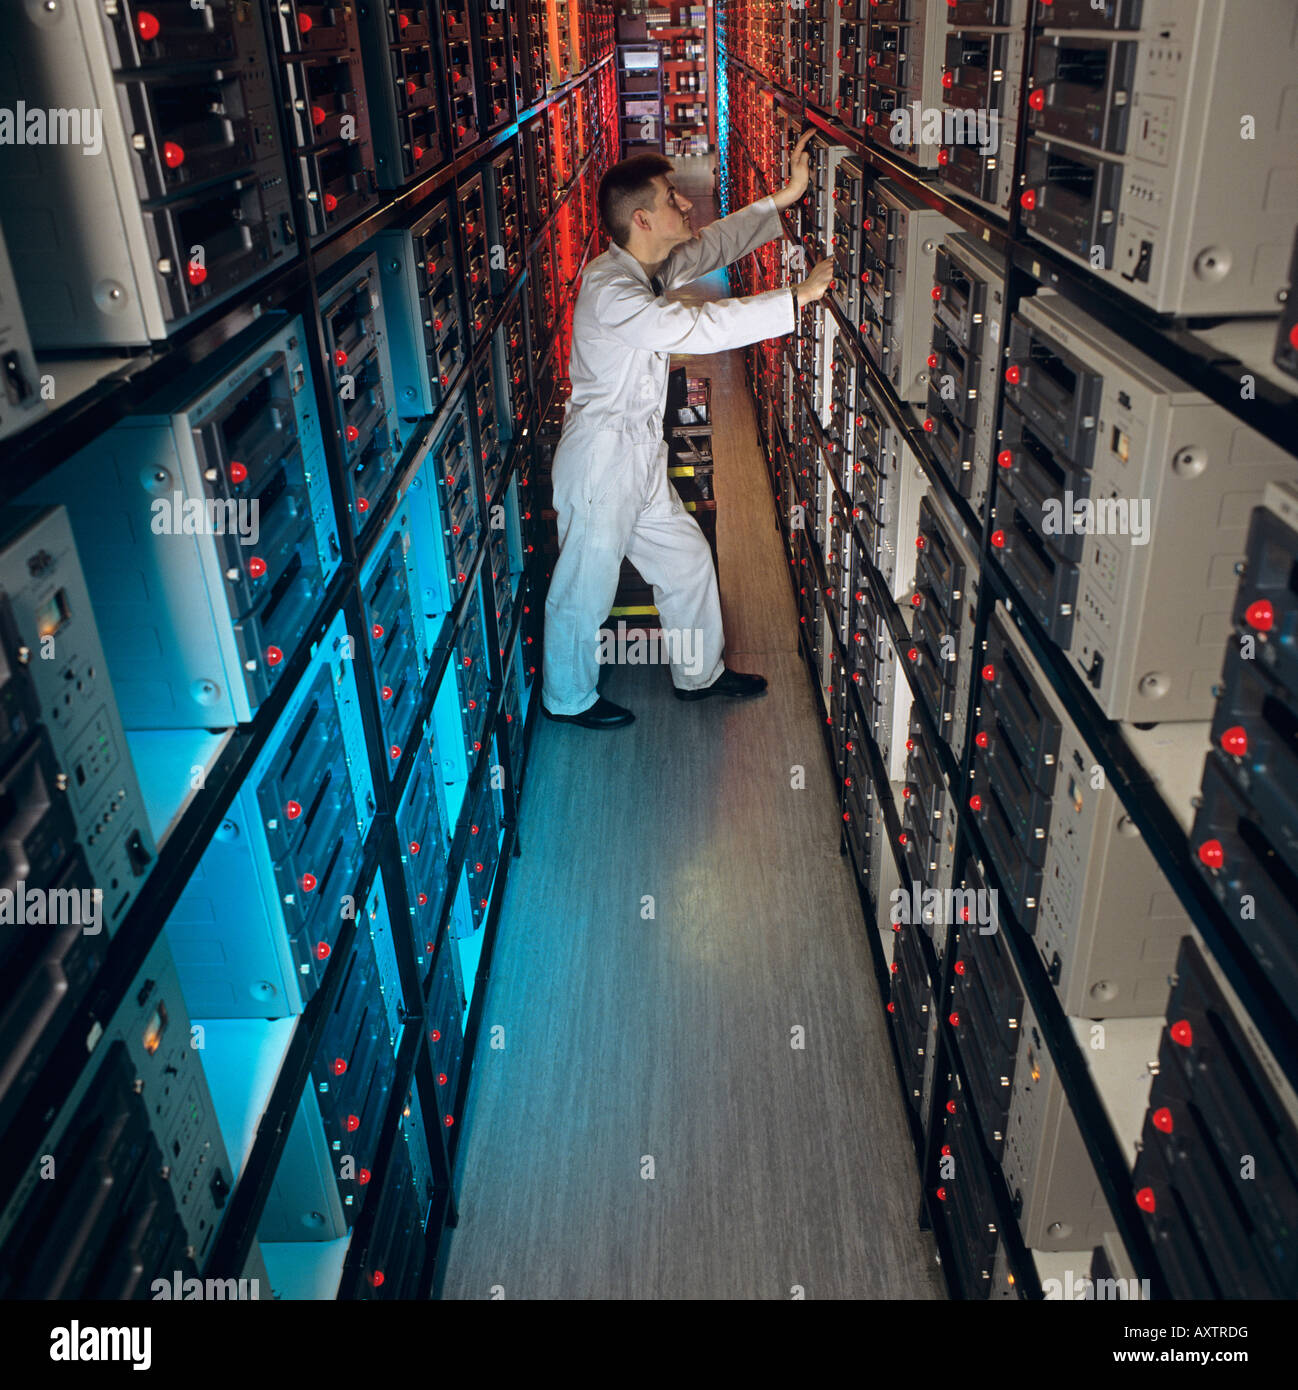 Mass production in duplication laboratory of movie films on to VHS video tape for distribution in retail market - Stock Image